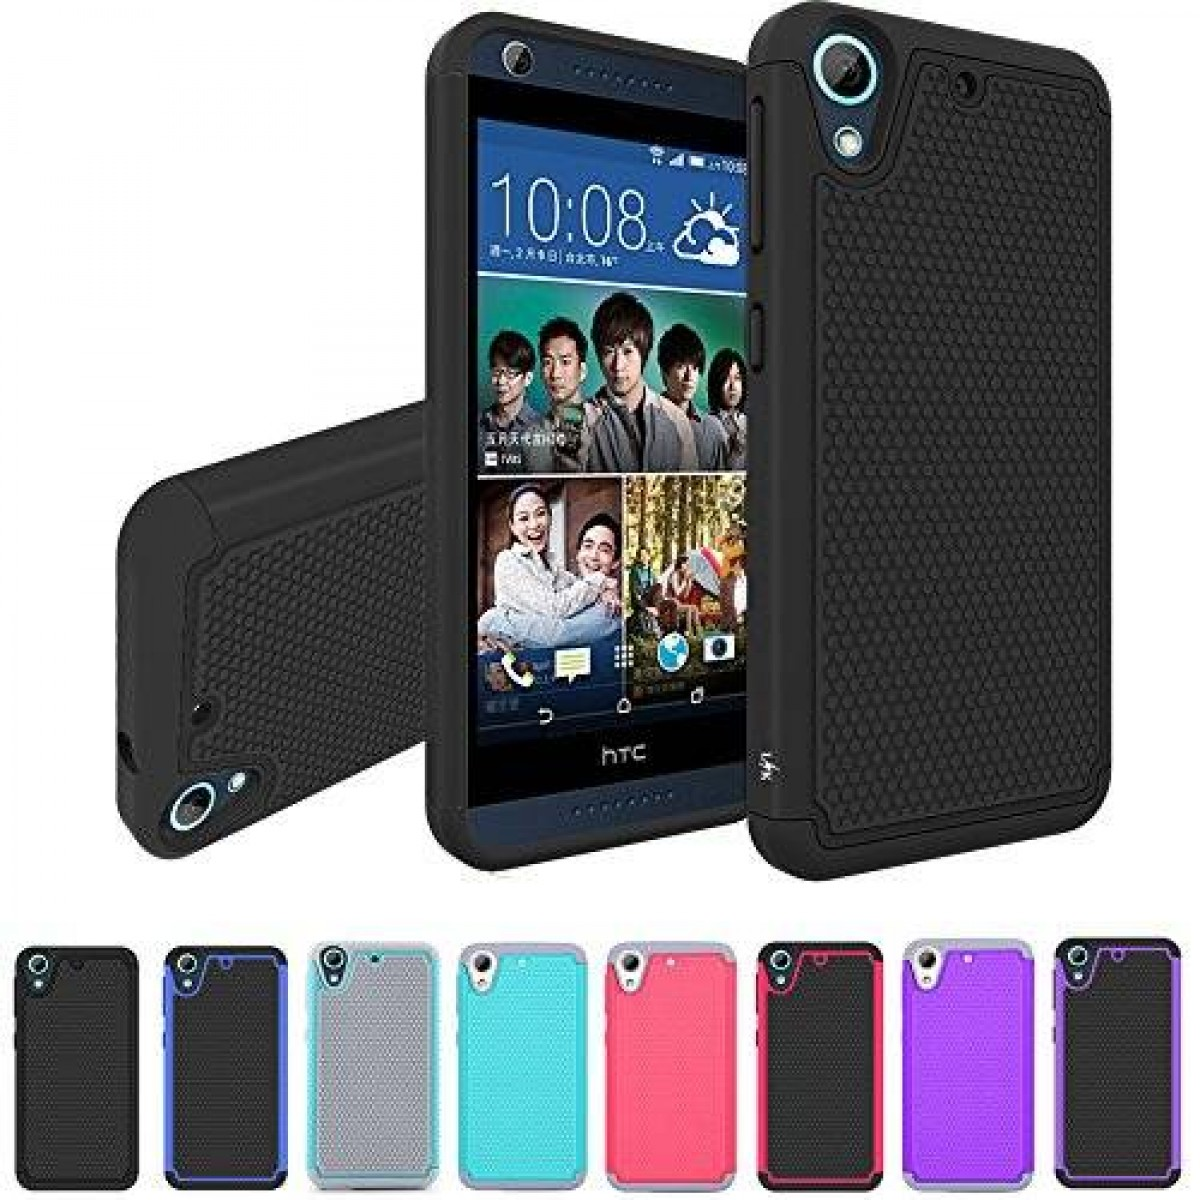 brand new 4b691 80d46 HTC Desire 626 / 626s Case, LK [Shockproof] Hybrid Dual Layer Armor  Defender Protective Case Cover for HTC Desire 626 / 626s (Black)